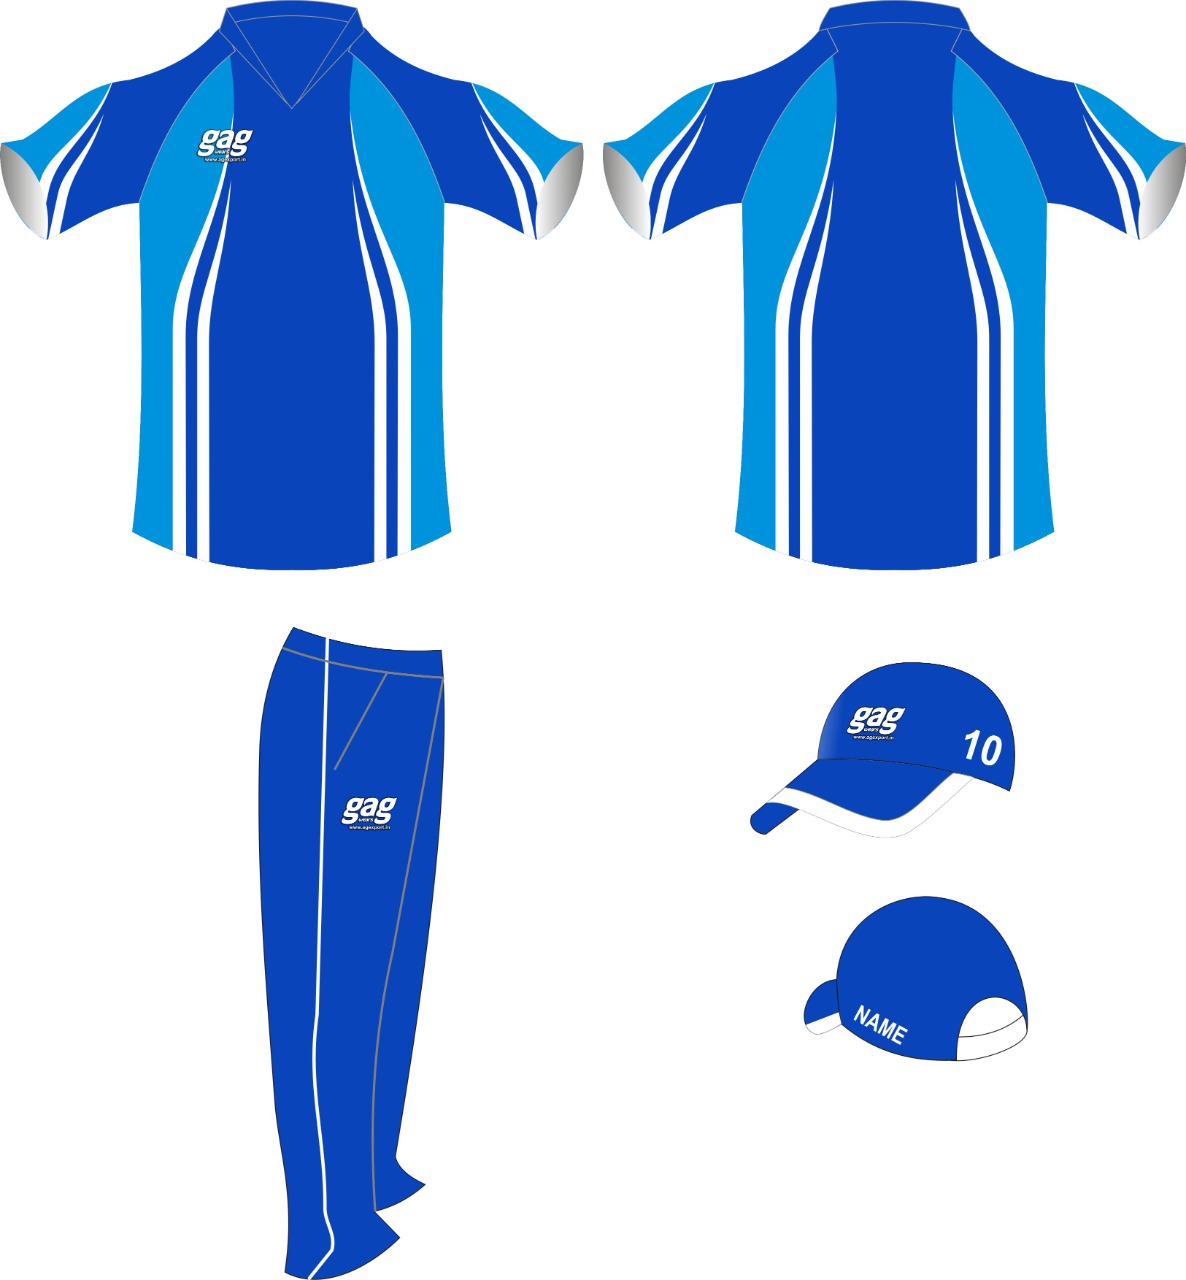 Mens Cricket Trousers Manufacturers in Jalandhar in Bangladesh